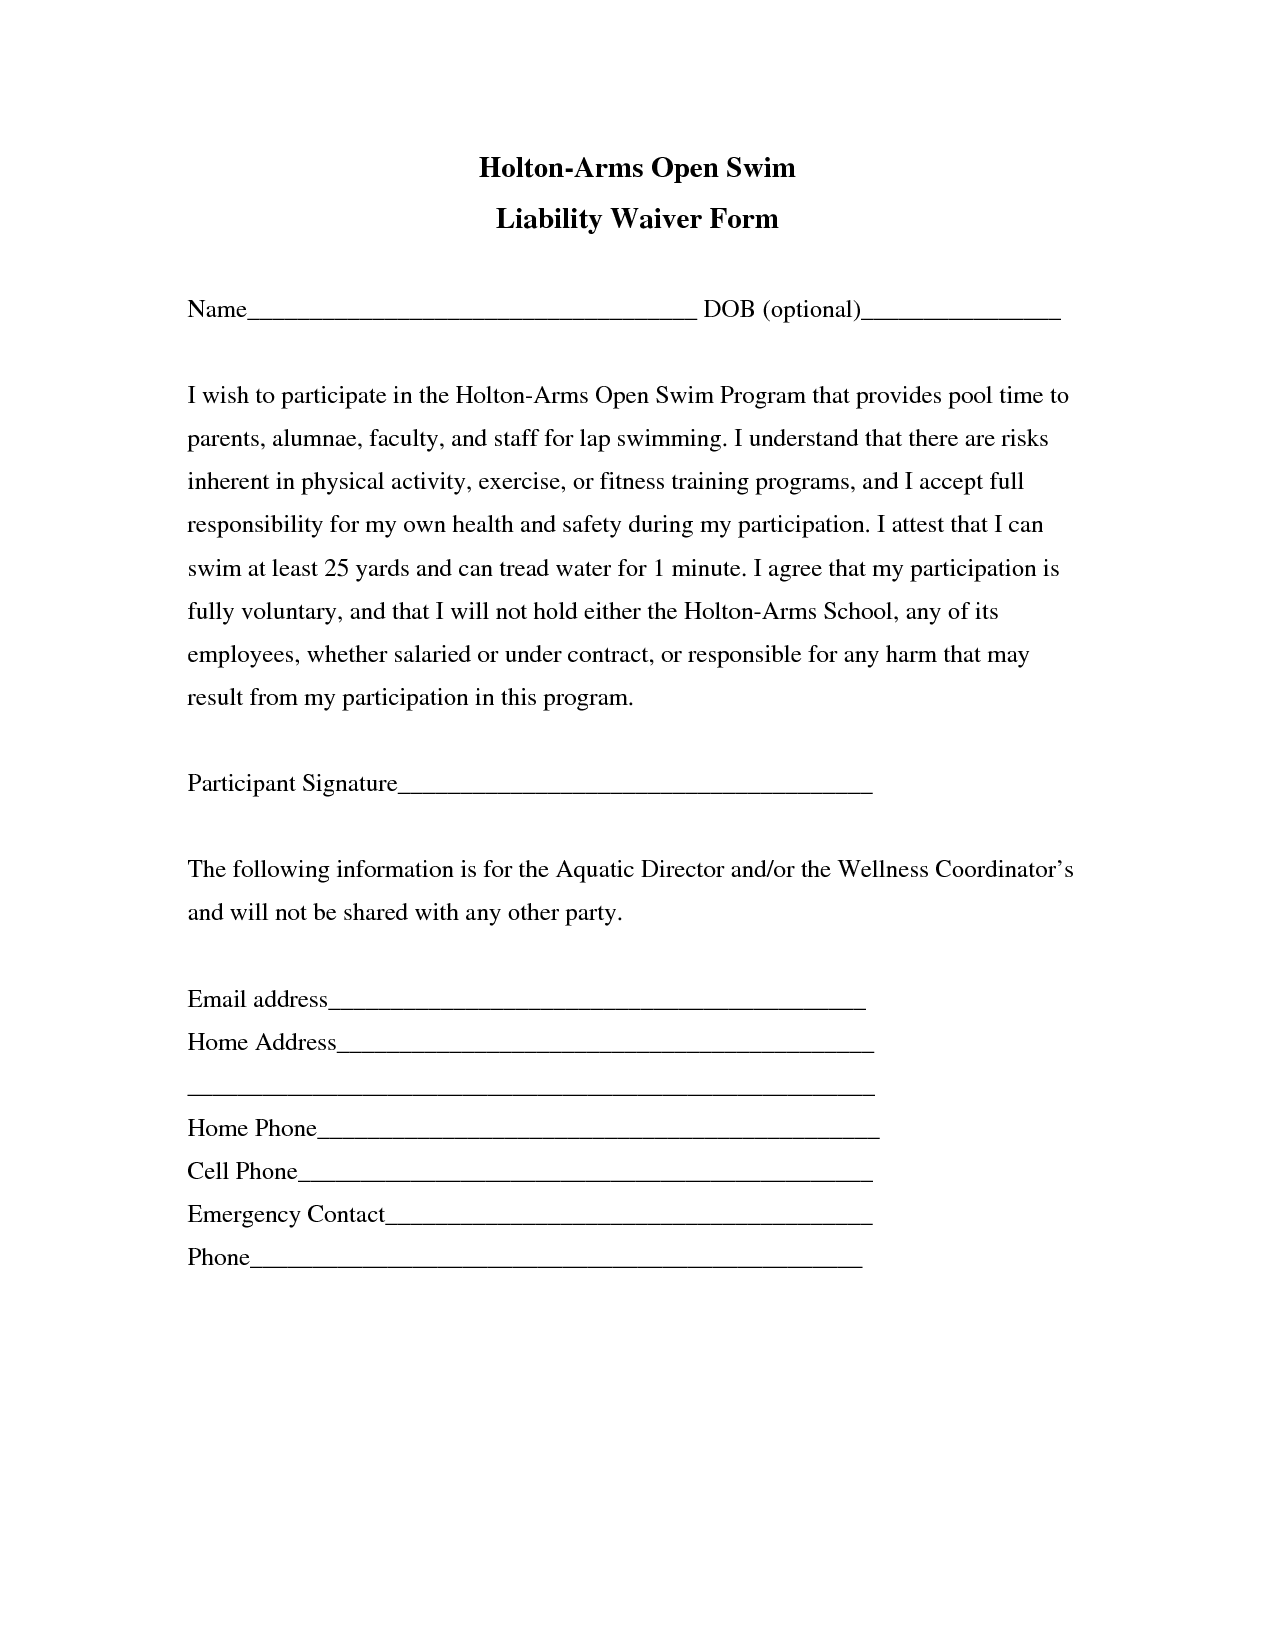 Volunteer Release And Waiver Of Liability Form Liability Insurance Liability Insurance Waiver Template